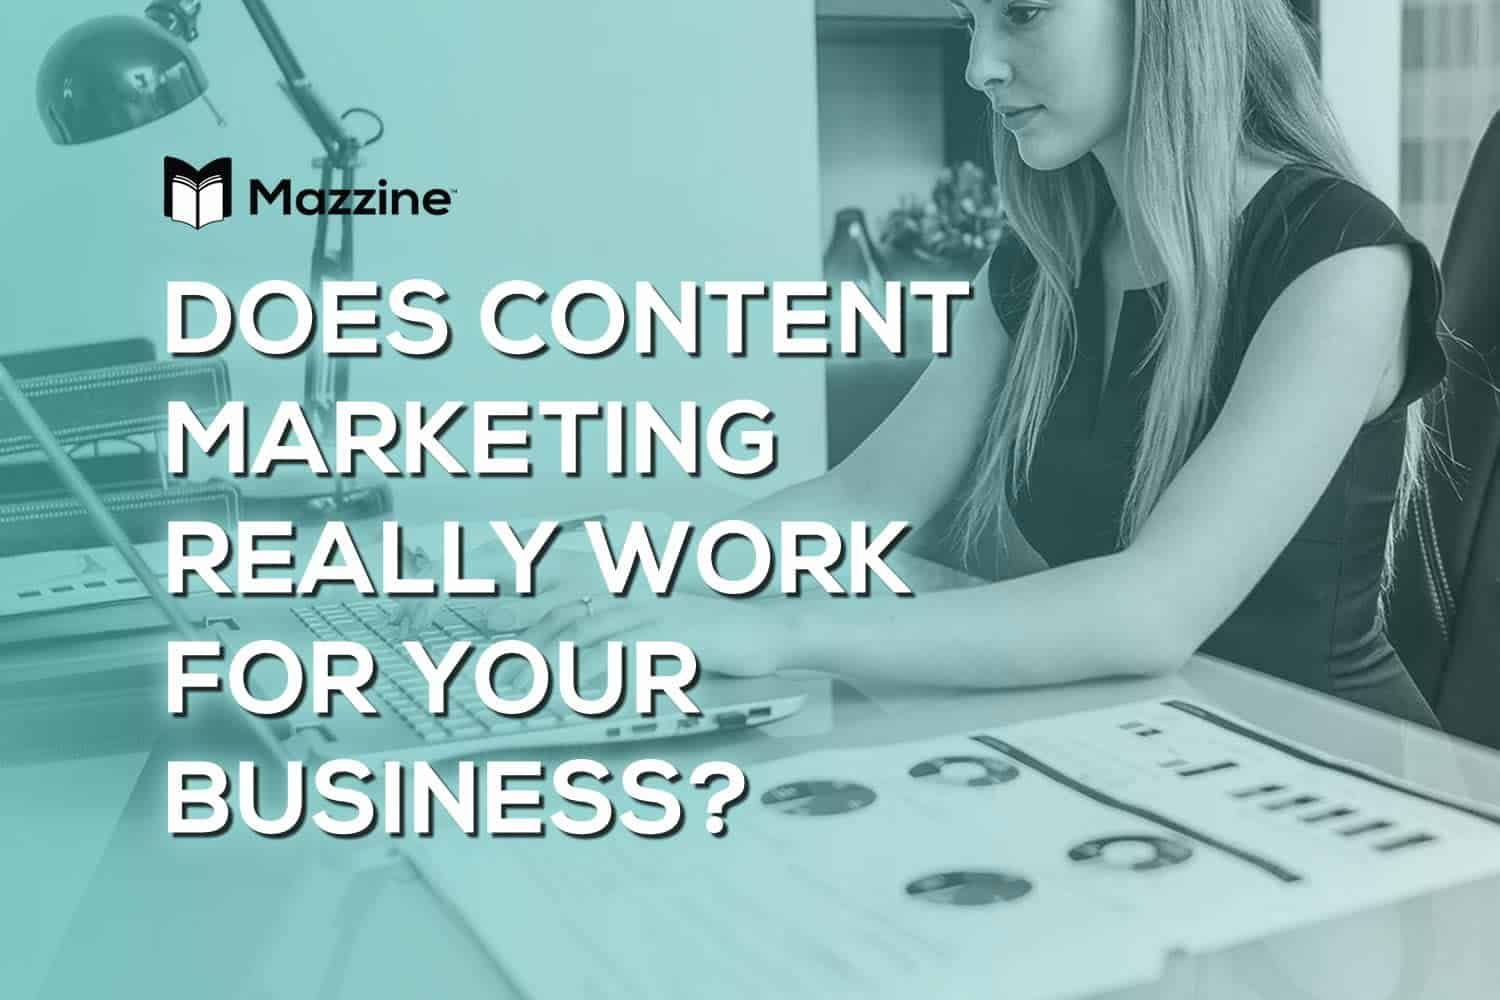 Does Content Marketing Really Work For Your Business